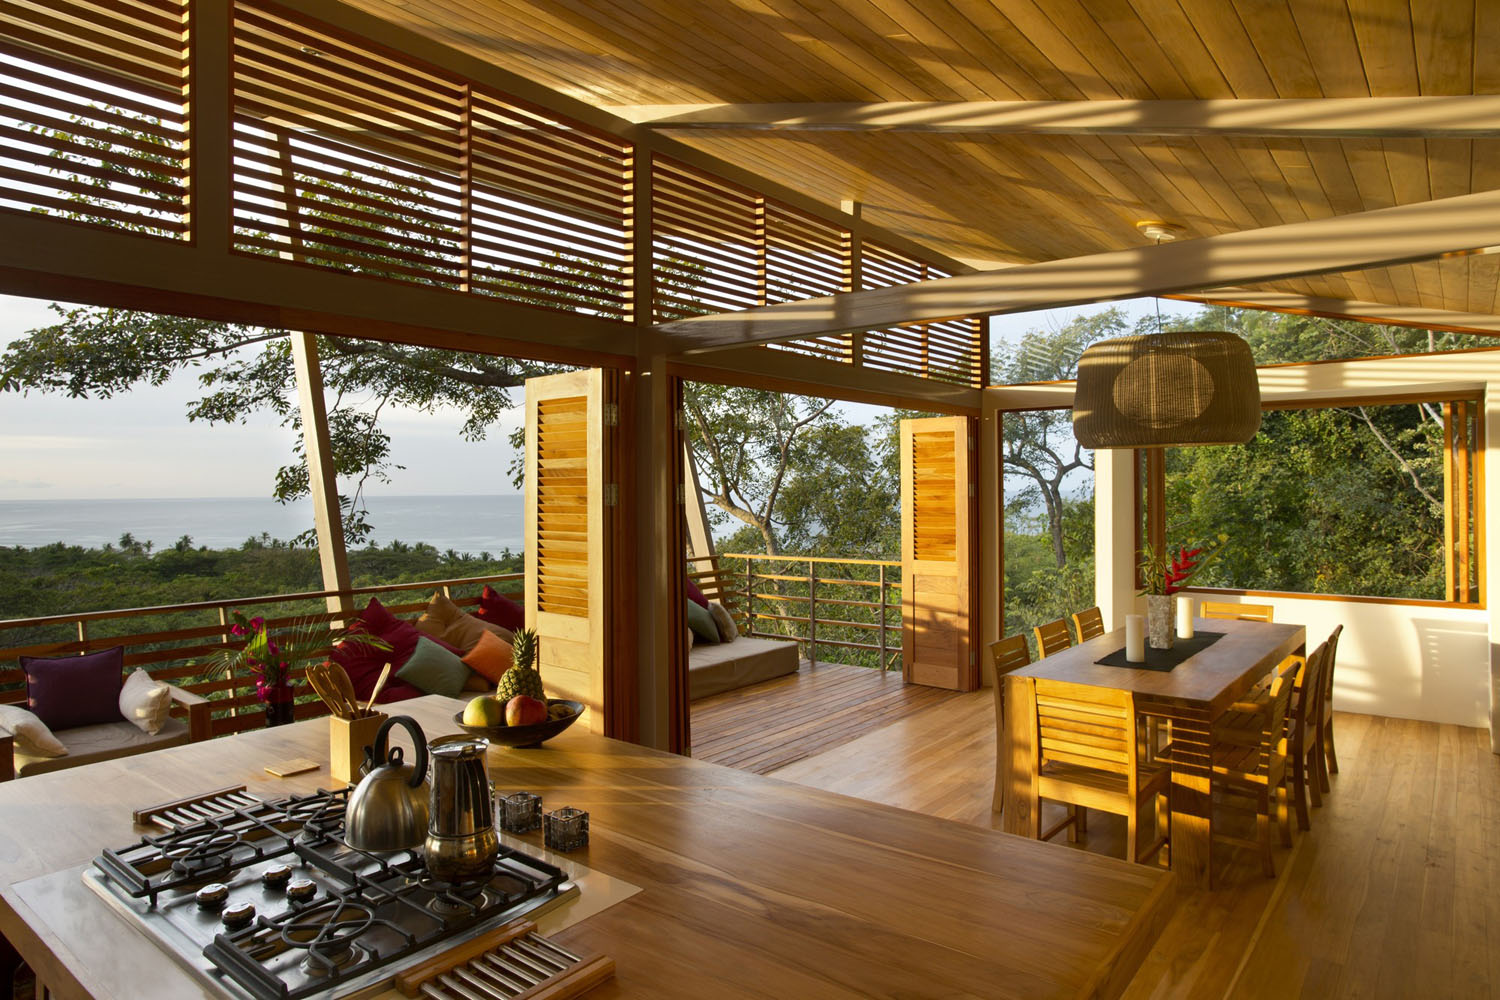 ocean view modern wooden house costa rica_1 - Modern Tropical House Design